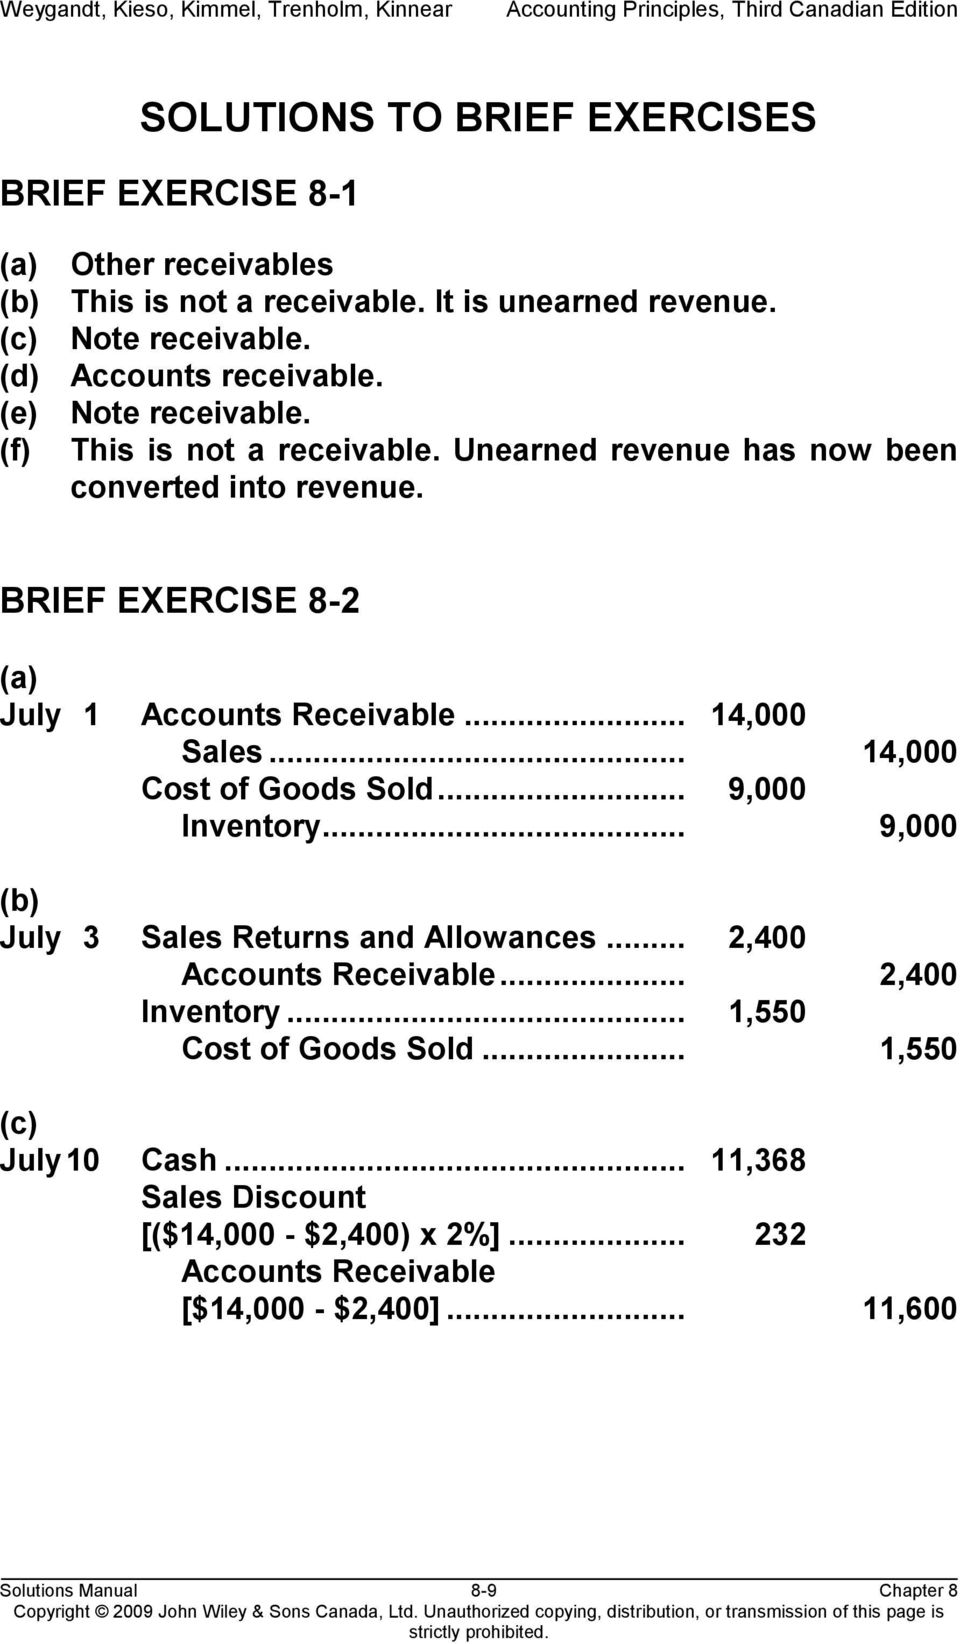 .. 14,000 Cost of Goods Sold... 9,000 Inventory... 9,000 (b) July 3 Sales Returns and Allowances... 2,400 Accounts Receivable... 2,400 Inventory.